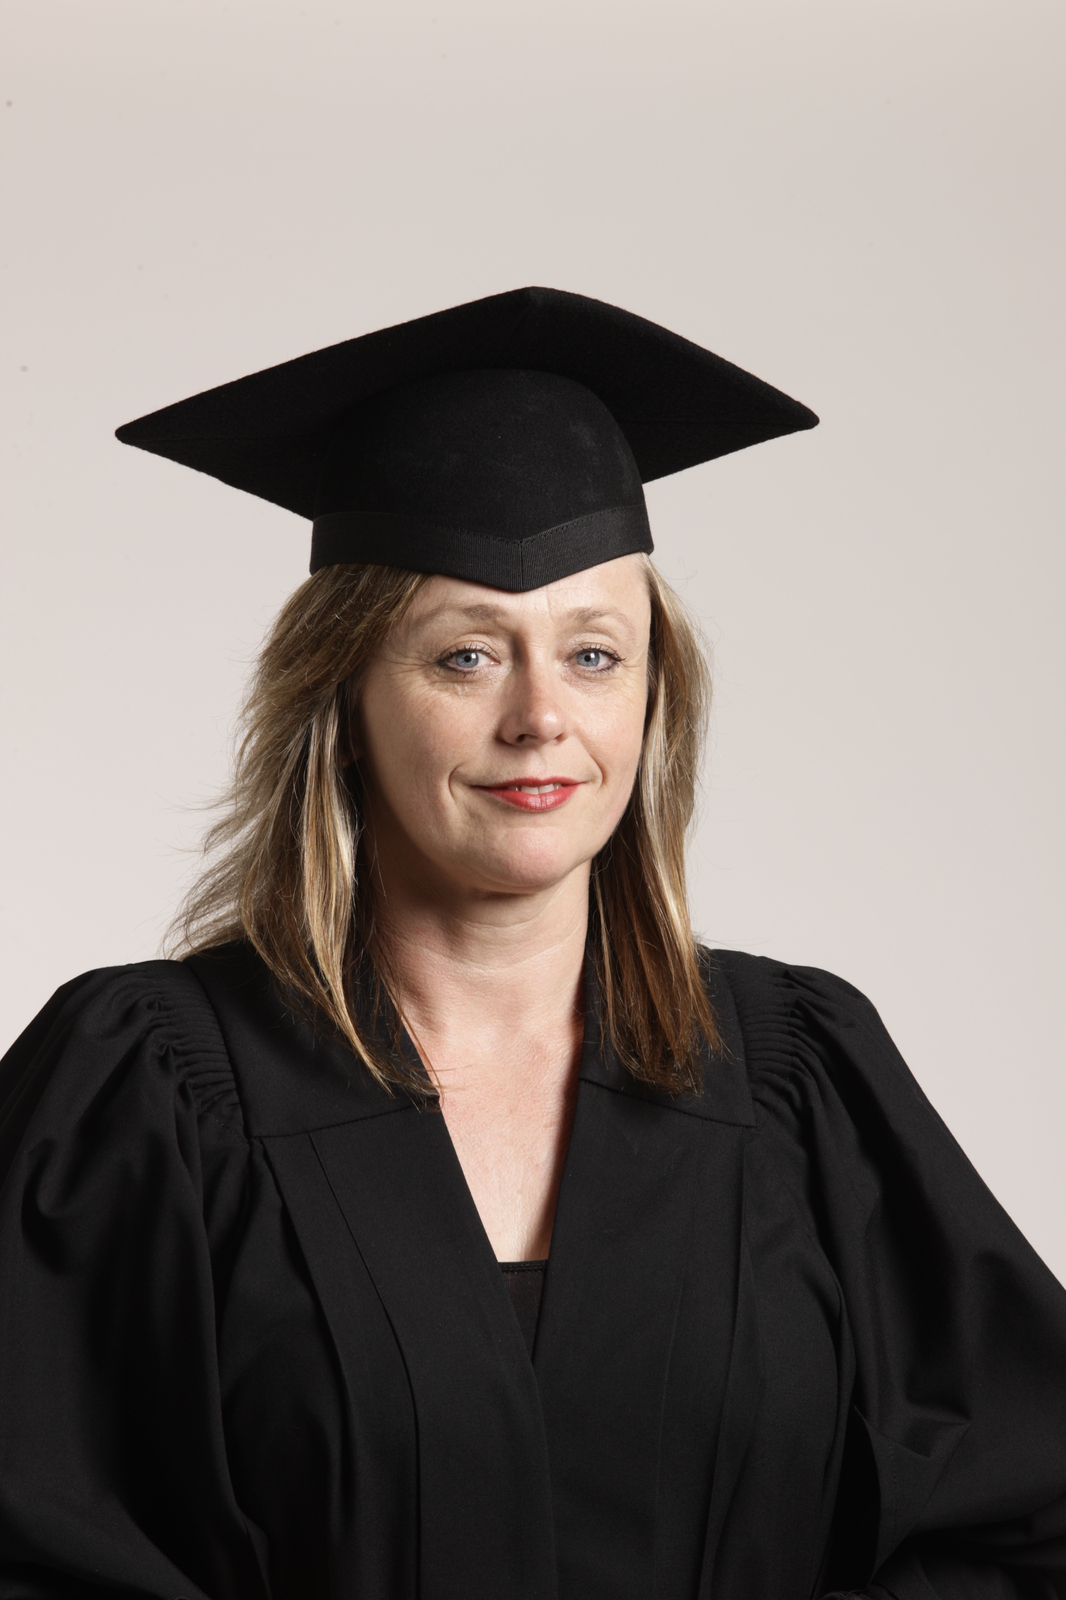 The University of Sydney Alumni eStore - Gown - Graduate or Postgraduate